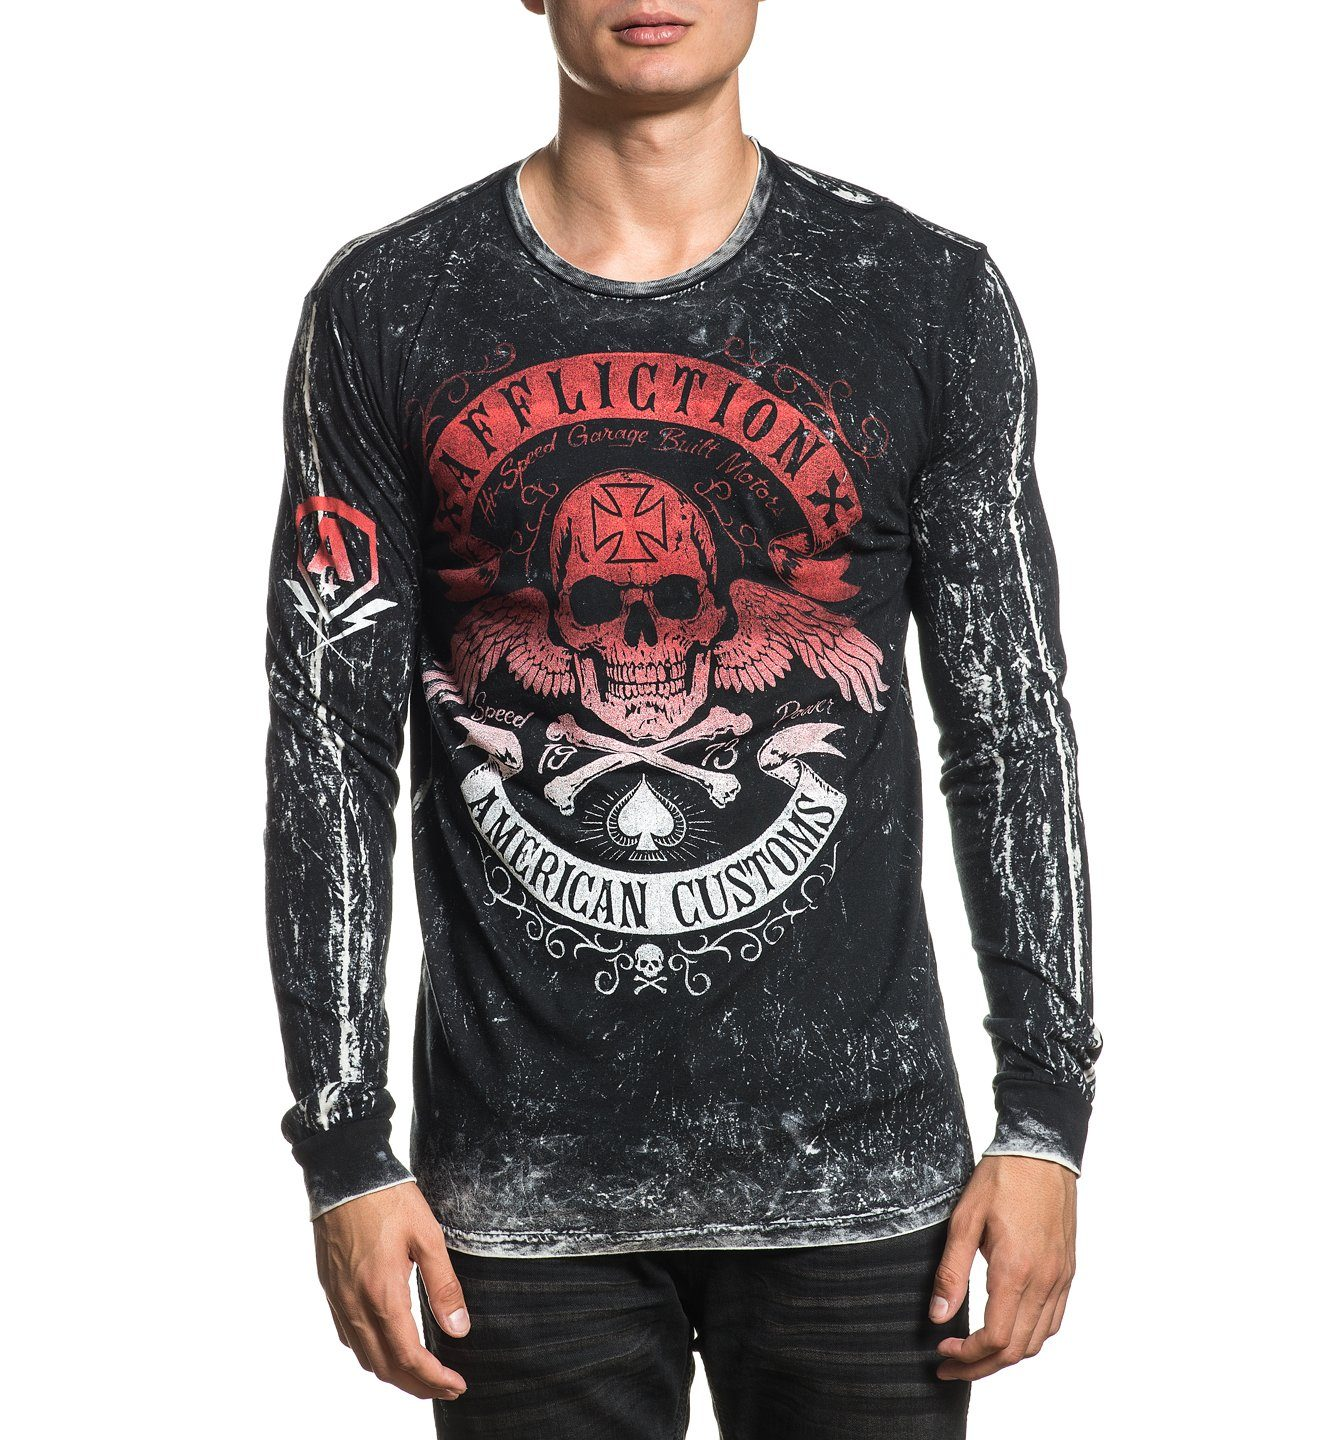 Mens Long Sleeve Tees - Speed Run